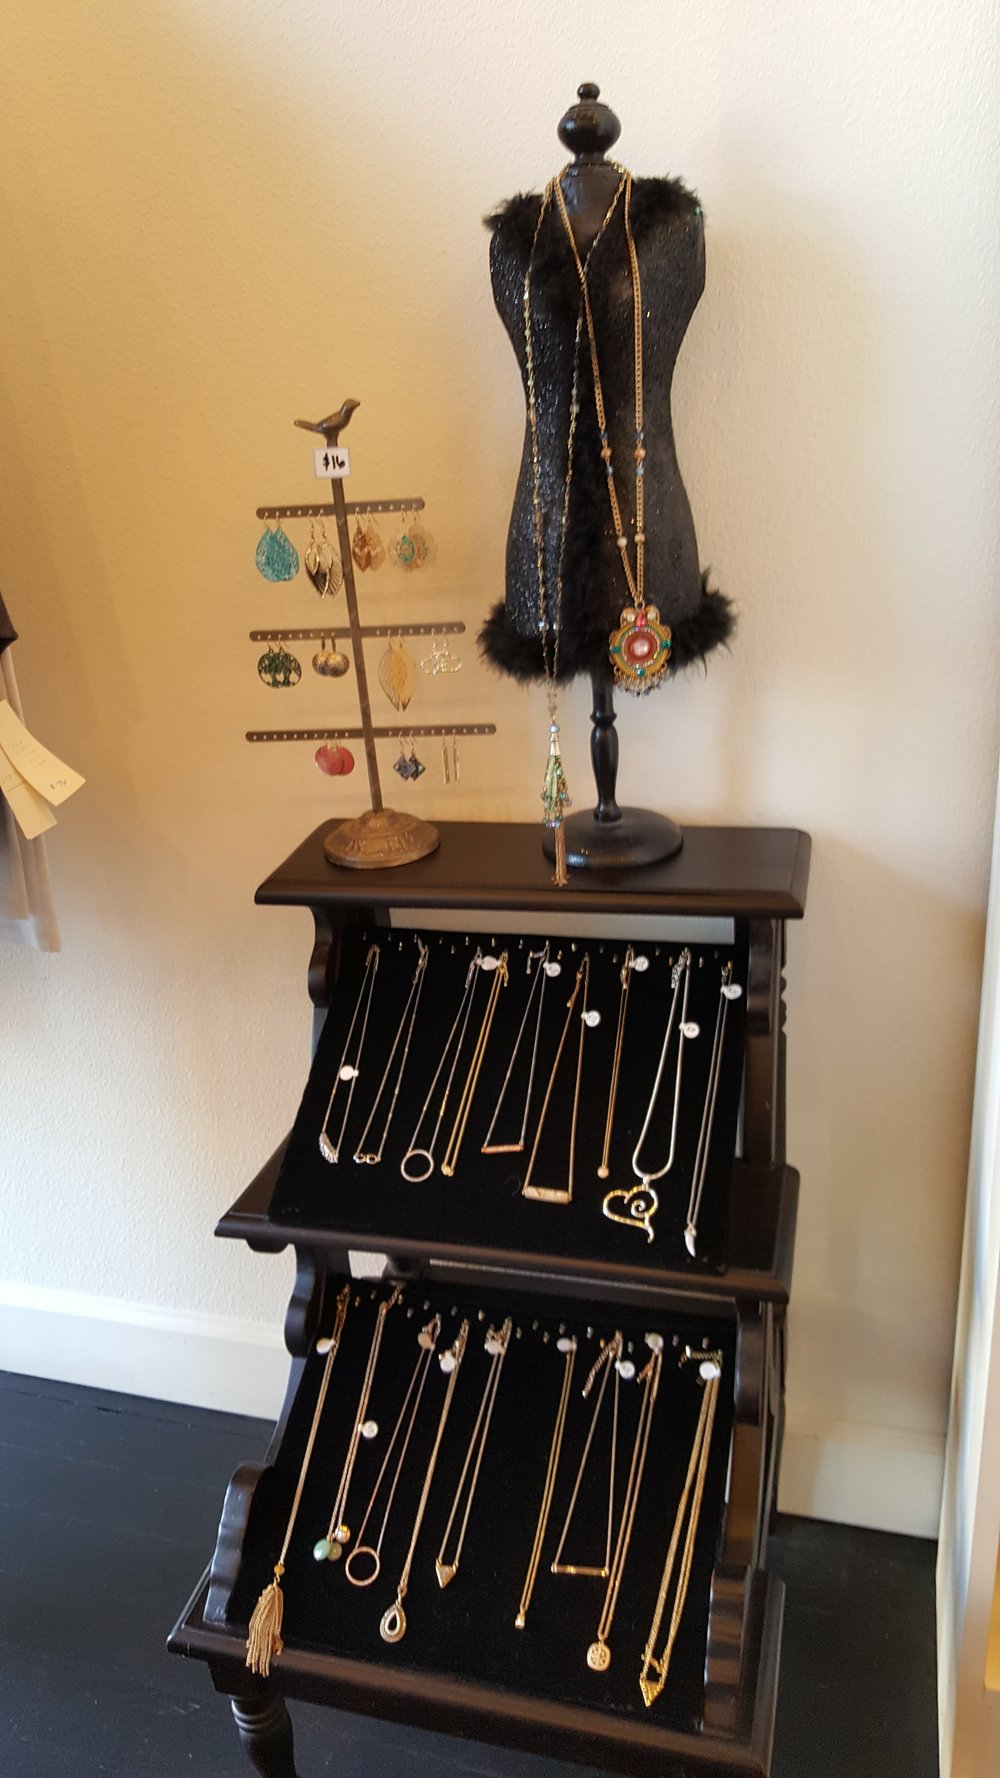 An assortment of accessories to pair back with the well-curated clothing assortment at Nikki Jane's!